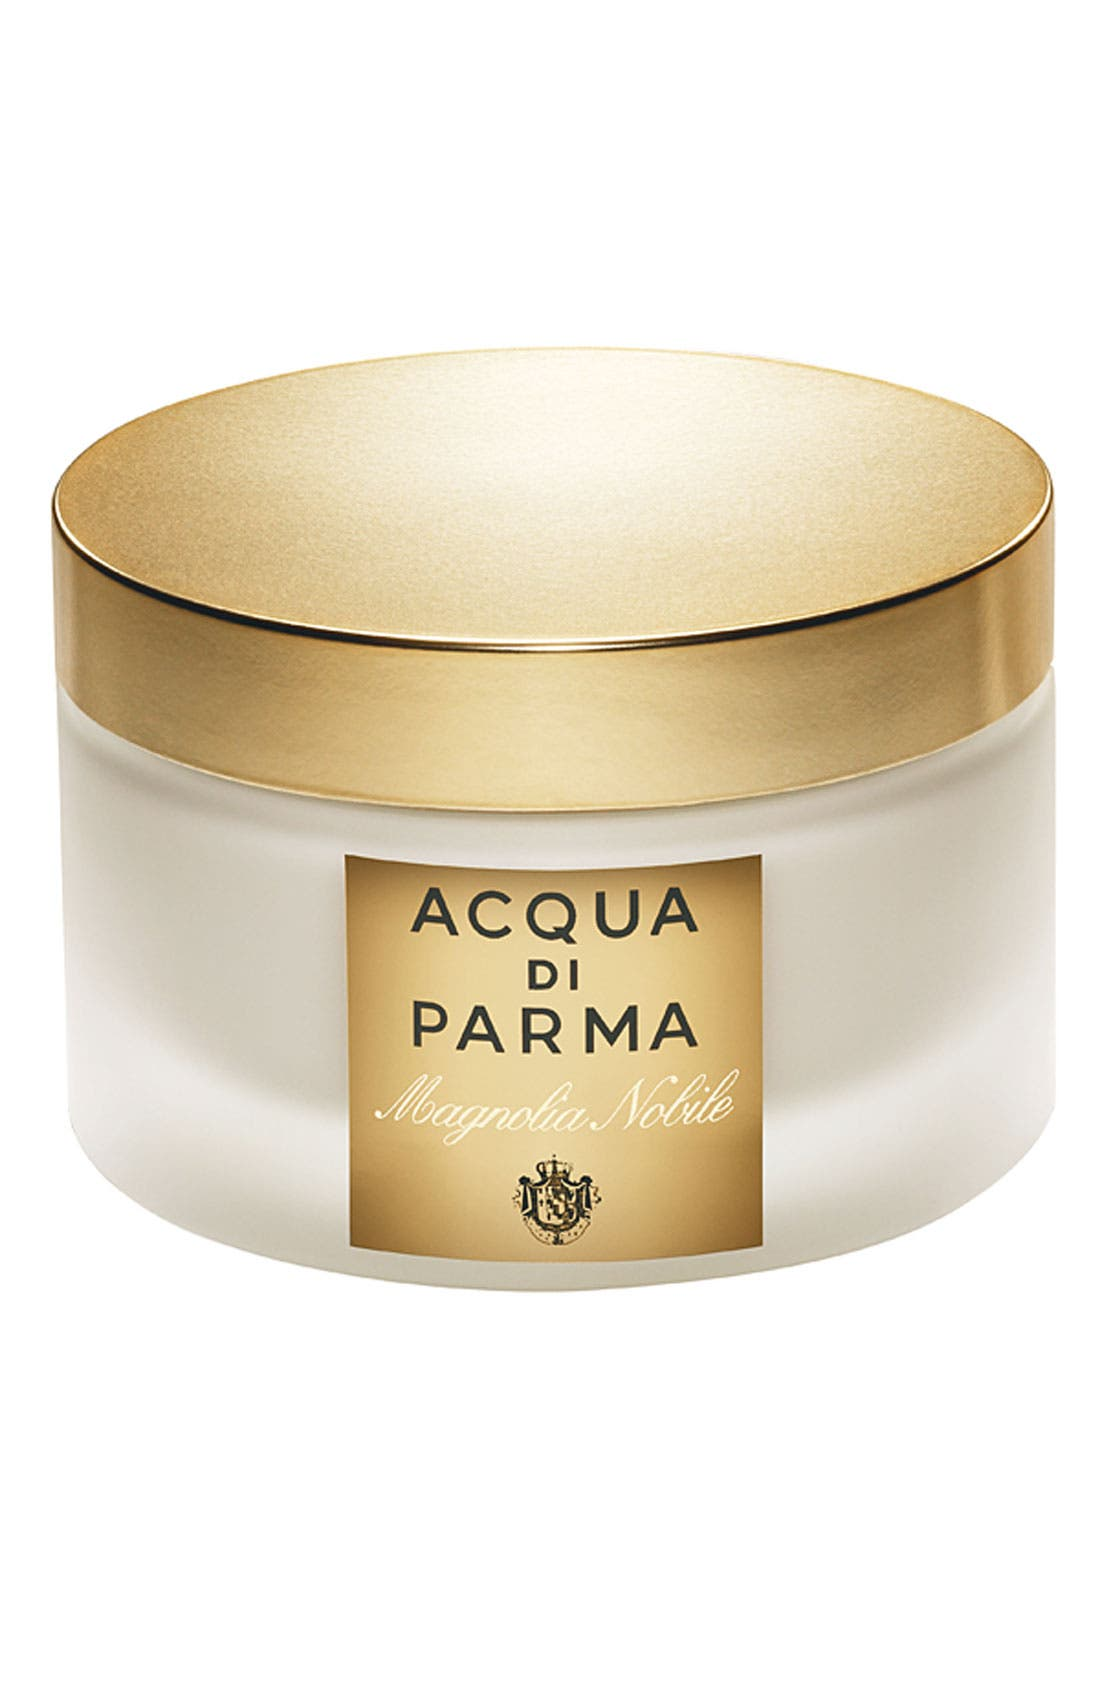 ACQUA DI PARMA, Magnolia Nobile Body Cream, Main thumbnail 1, color, NO COLOR